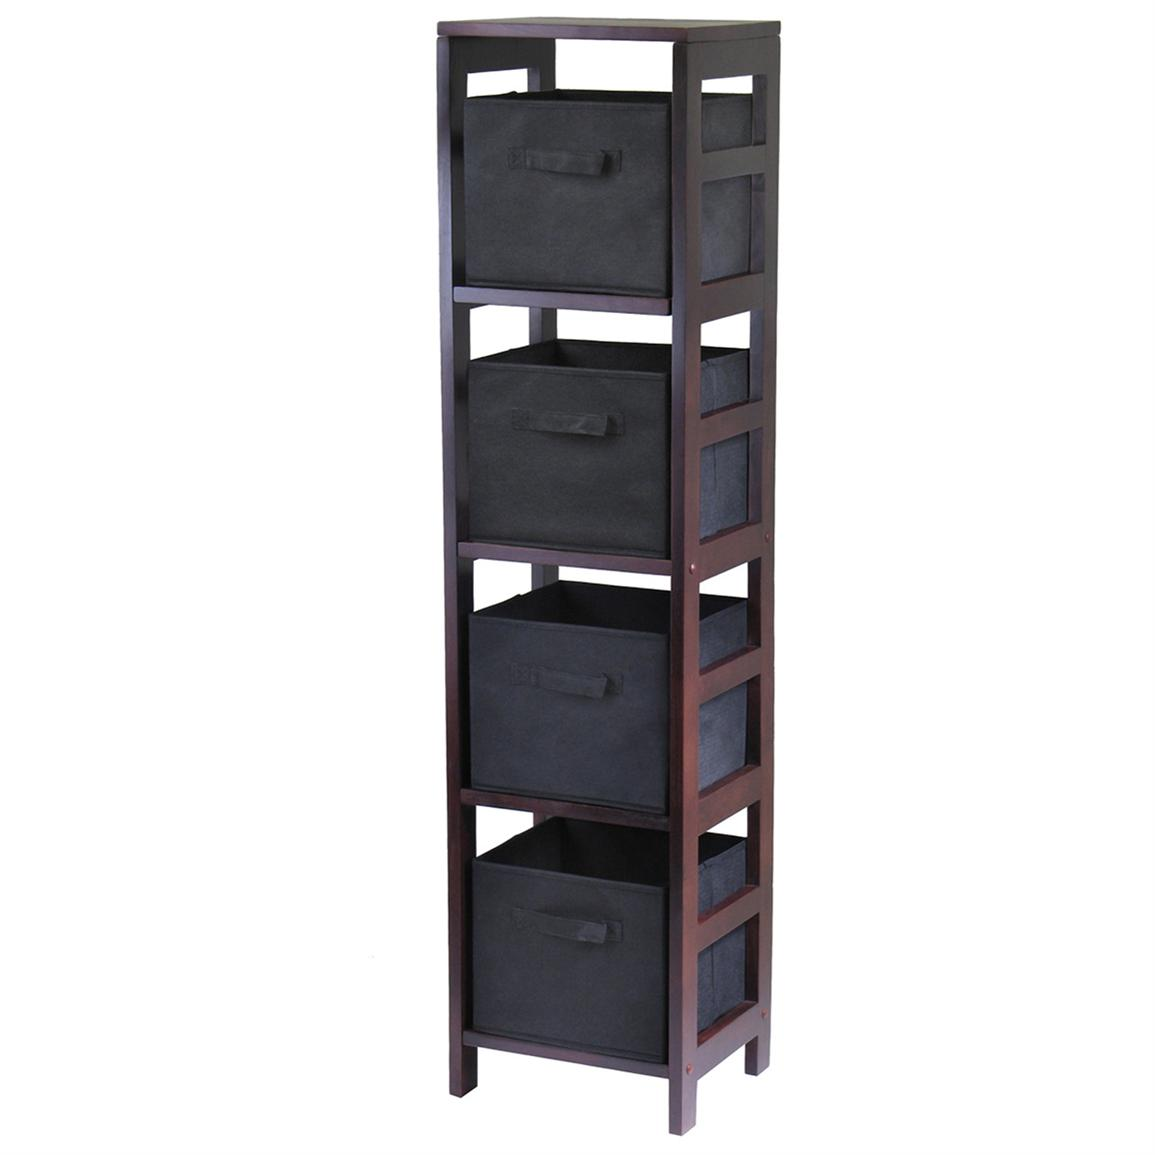 Winsome® Leo 4-Section Tall Storage Shelf with 4 Foldable Black Fabric Baskets